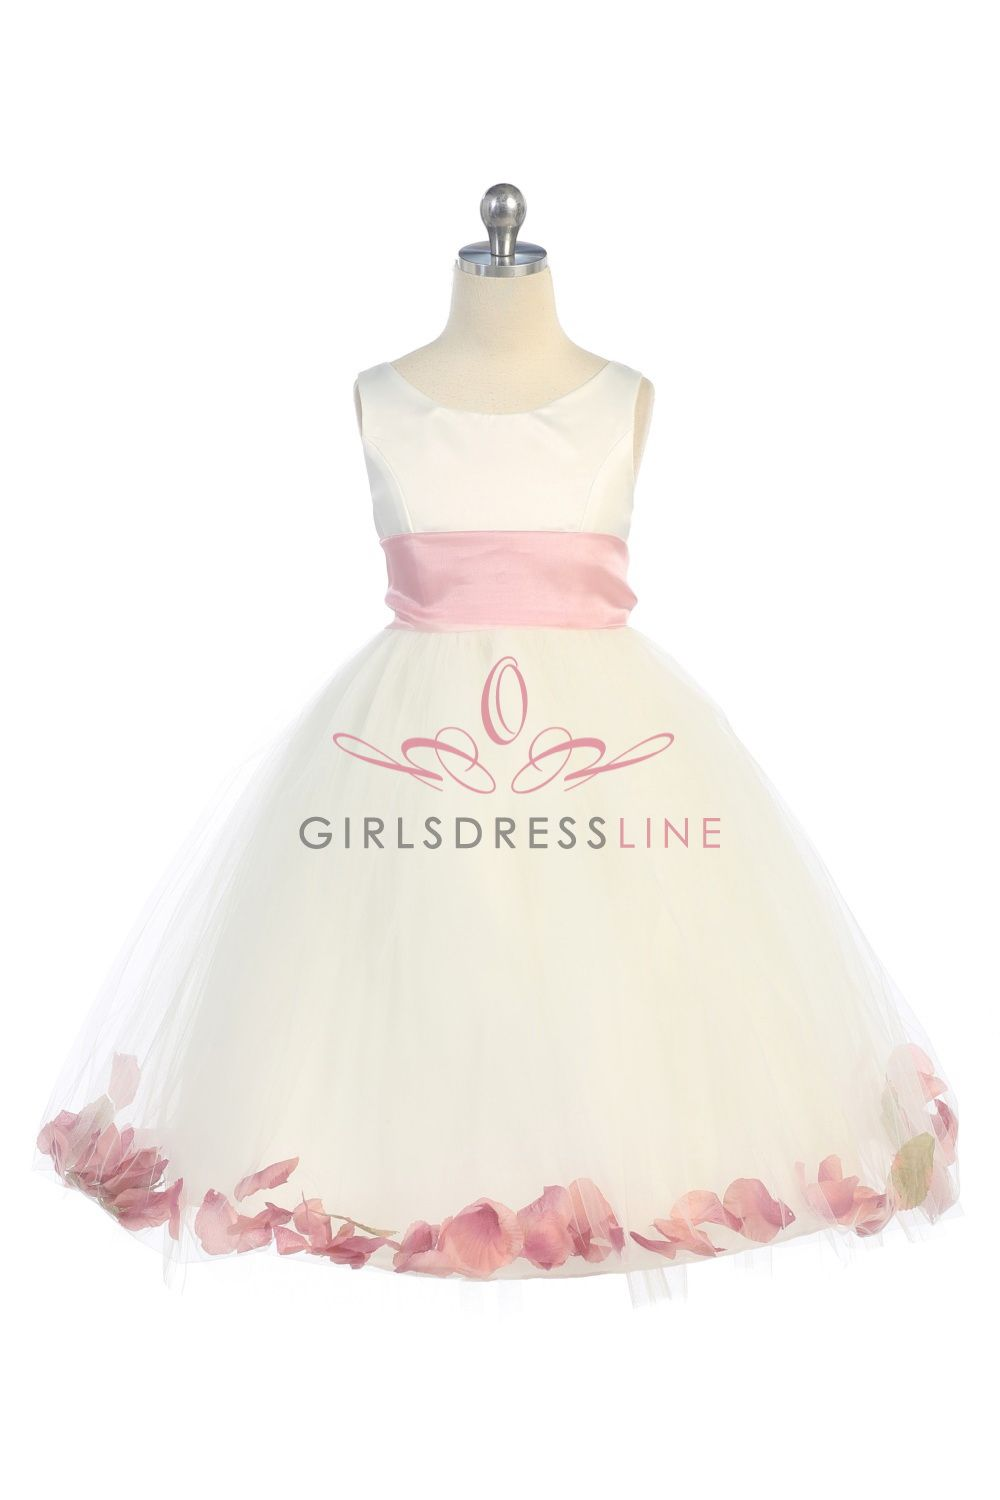 ab7bd8645b33 Ivory/Dusty Rose Satin & Tulle Flower Girl Dress with Petals & Sash  B1170-ID $40.95 on www.GirlsDressLine.Com